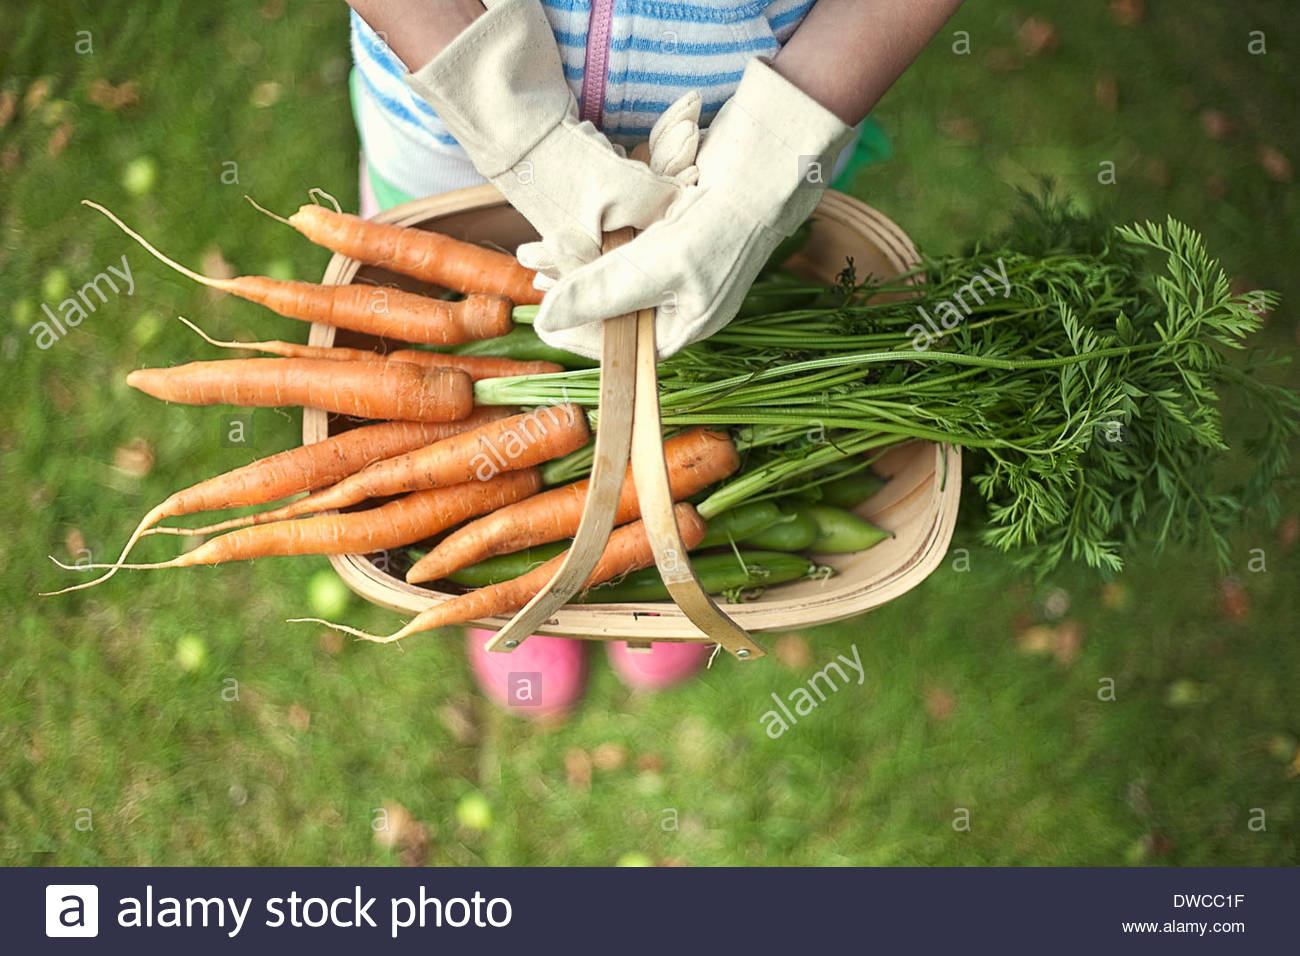 Garden trug de carottes Photo Stock